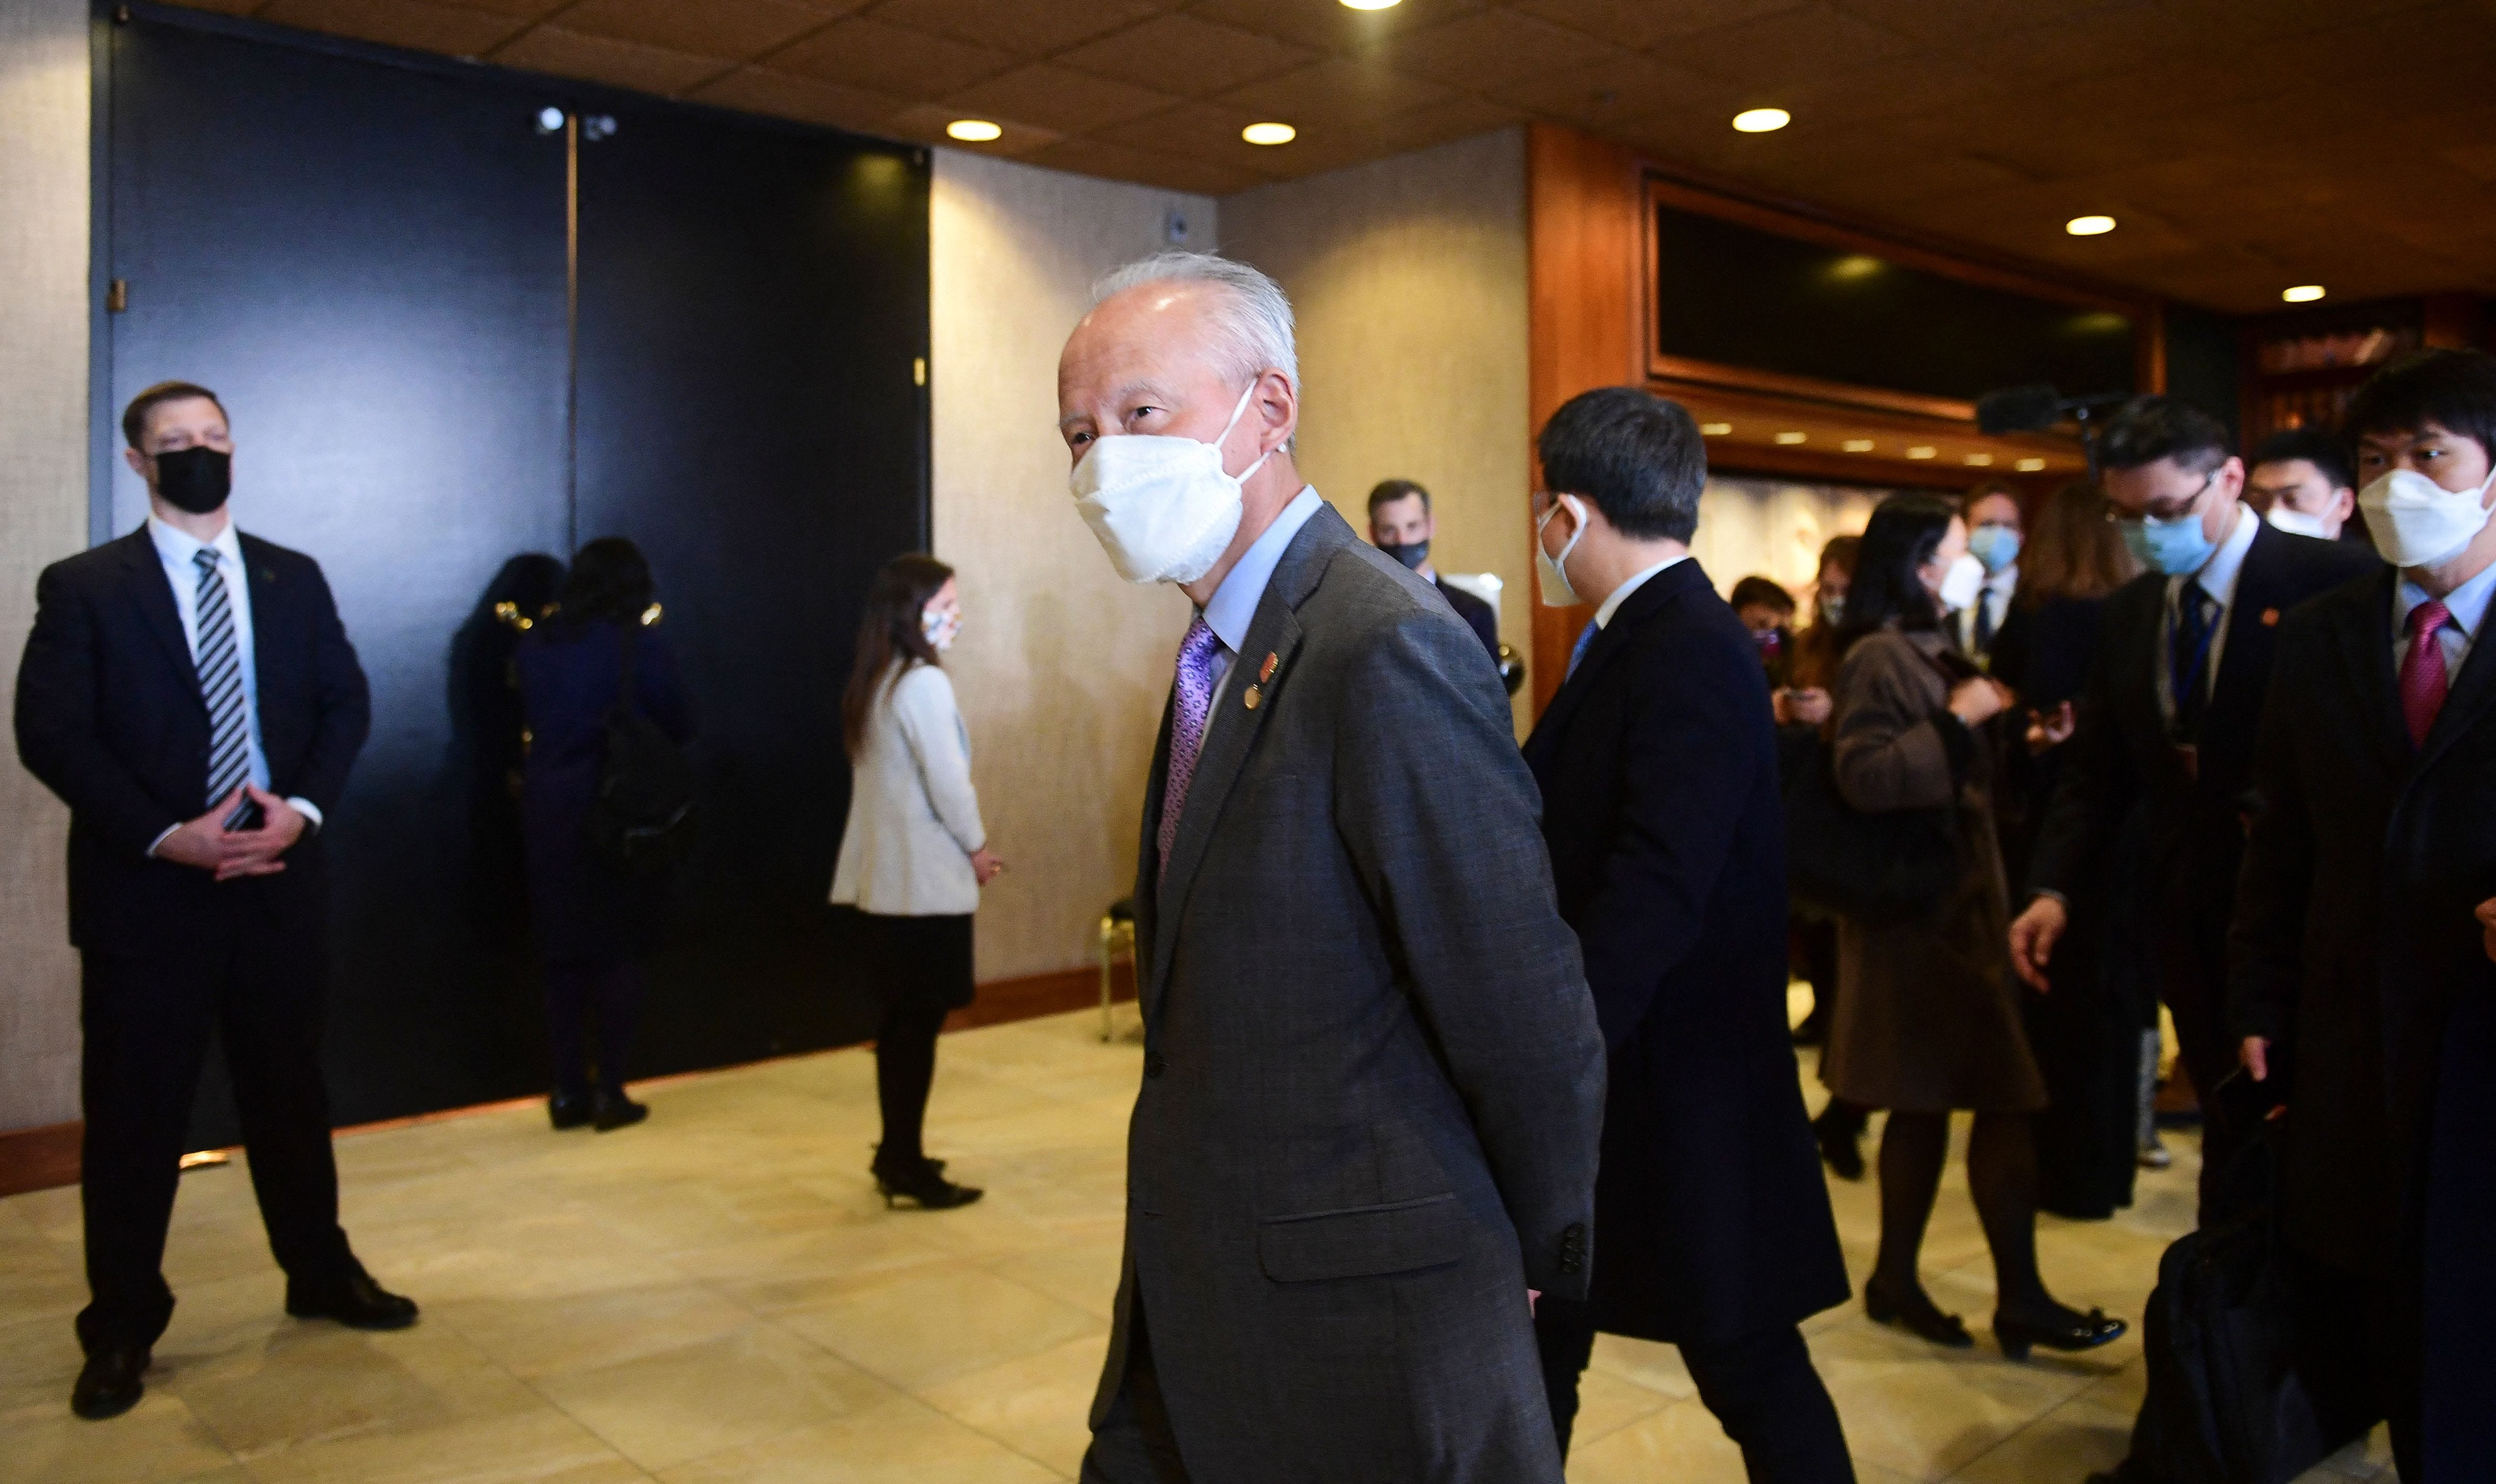 China's Ambassador to the United States, Cui Tiankai, walks past the closed-door morning session of talks between the U.S. and China in Anchorage, Alaska on March 19.